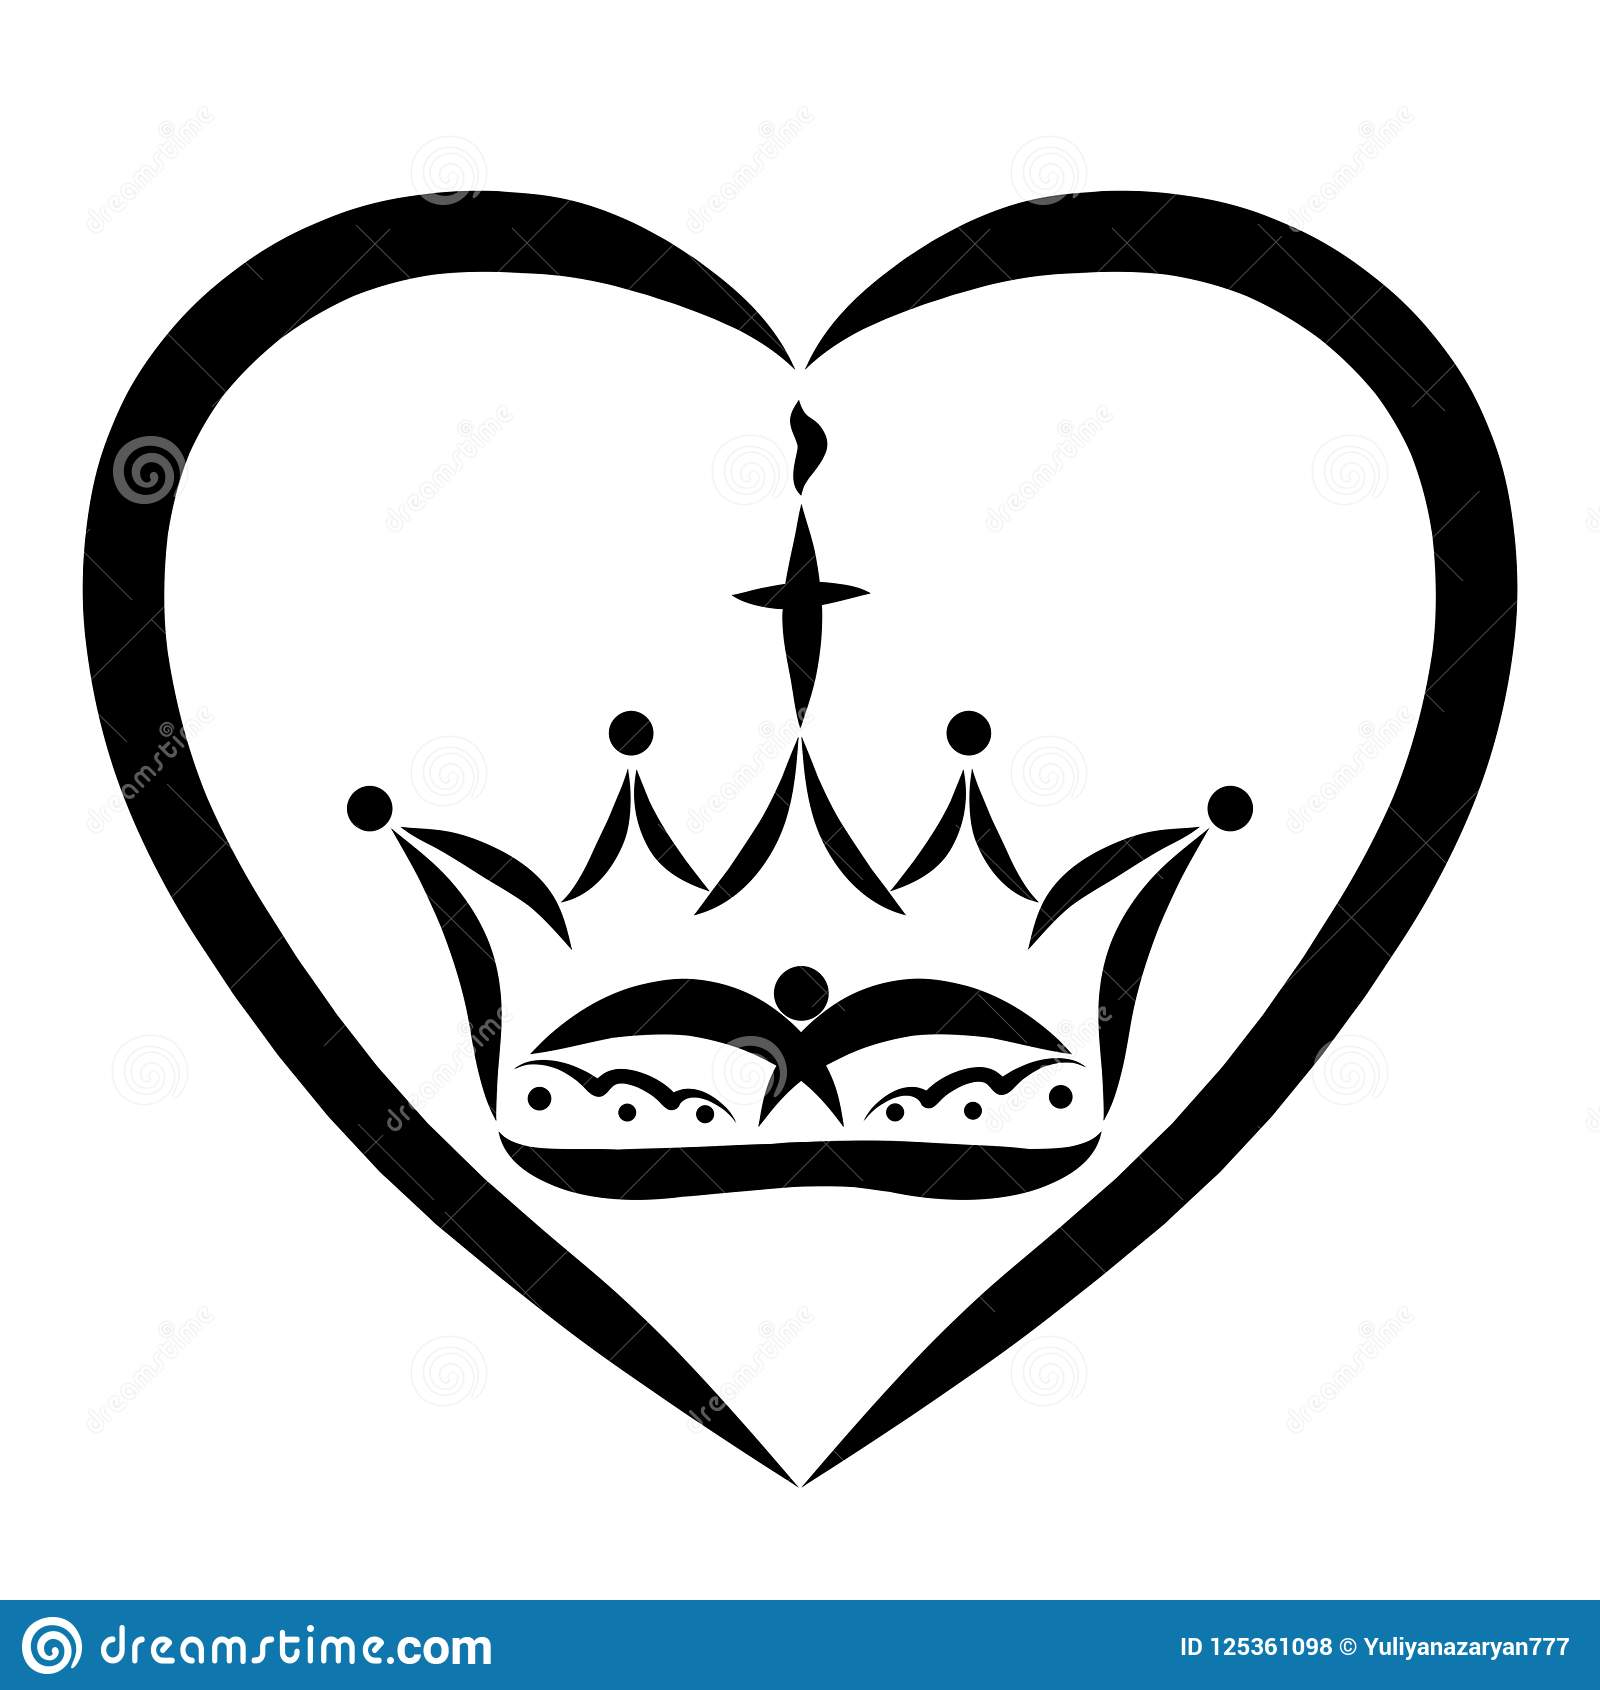 Crown With A Cross Flame And A Bird In The Heart The